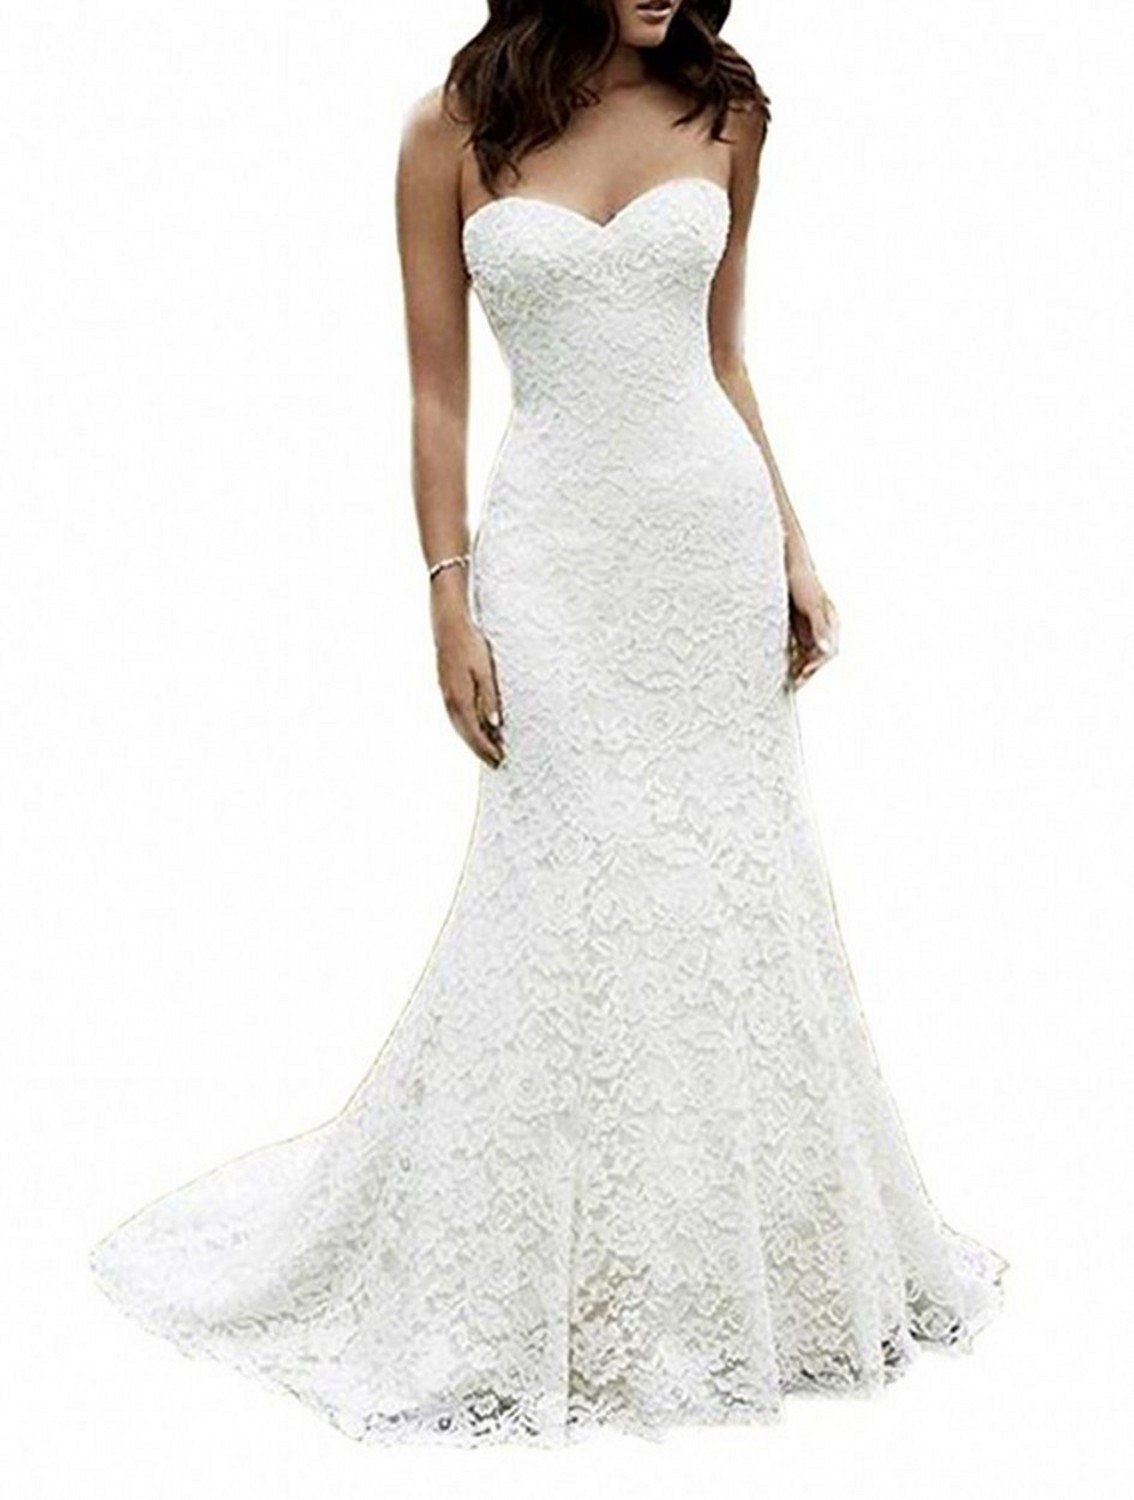 d8f9a4307d SIQINZHENG Women s Sweetheart Full Lace Beach Wedding Dress Mermaid Bridal  Gown product image